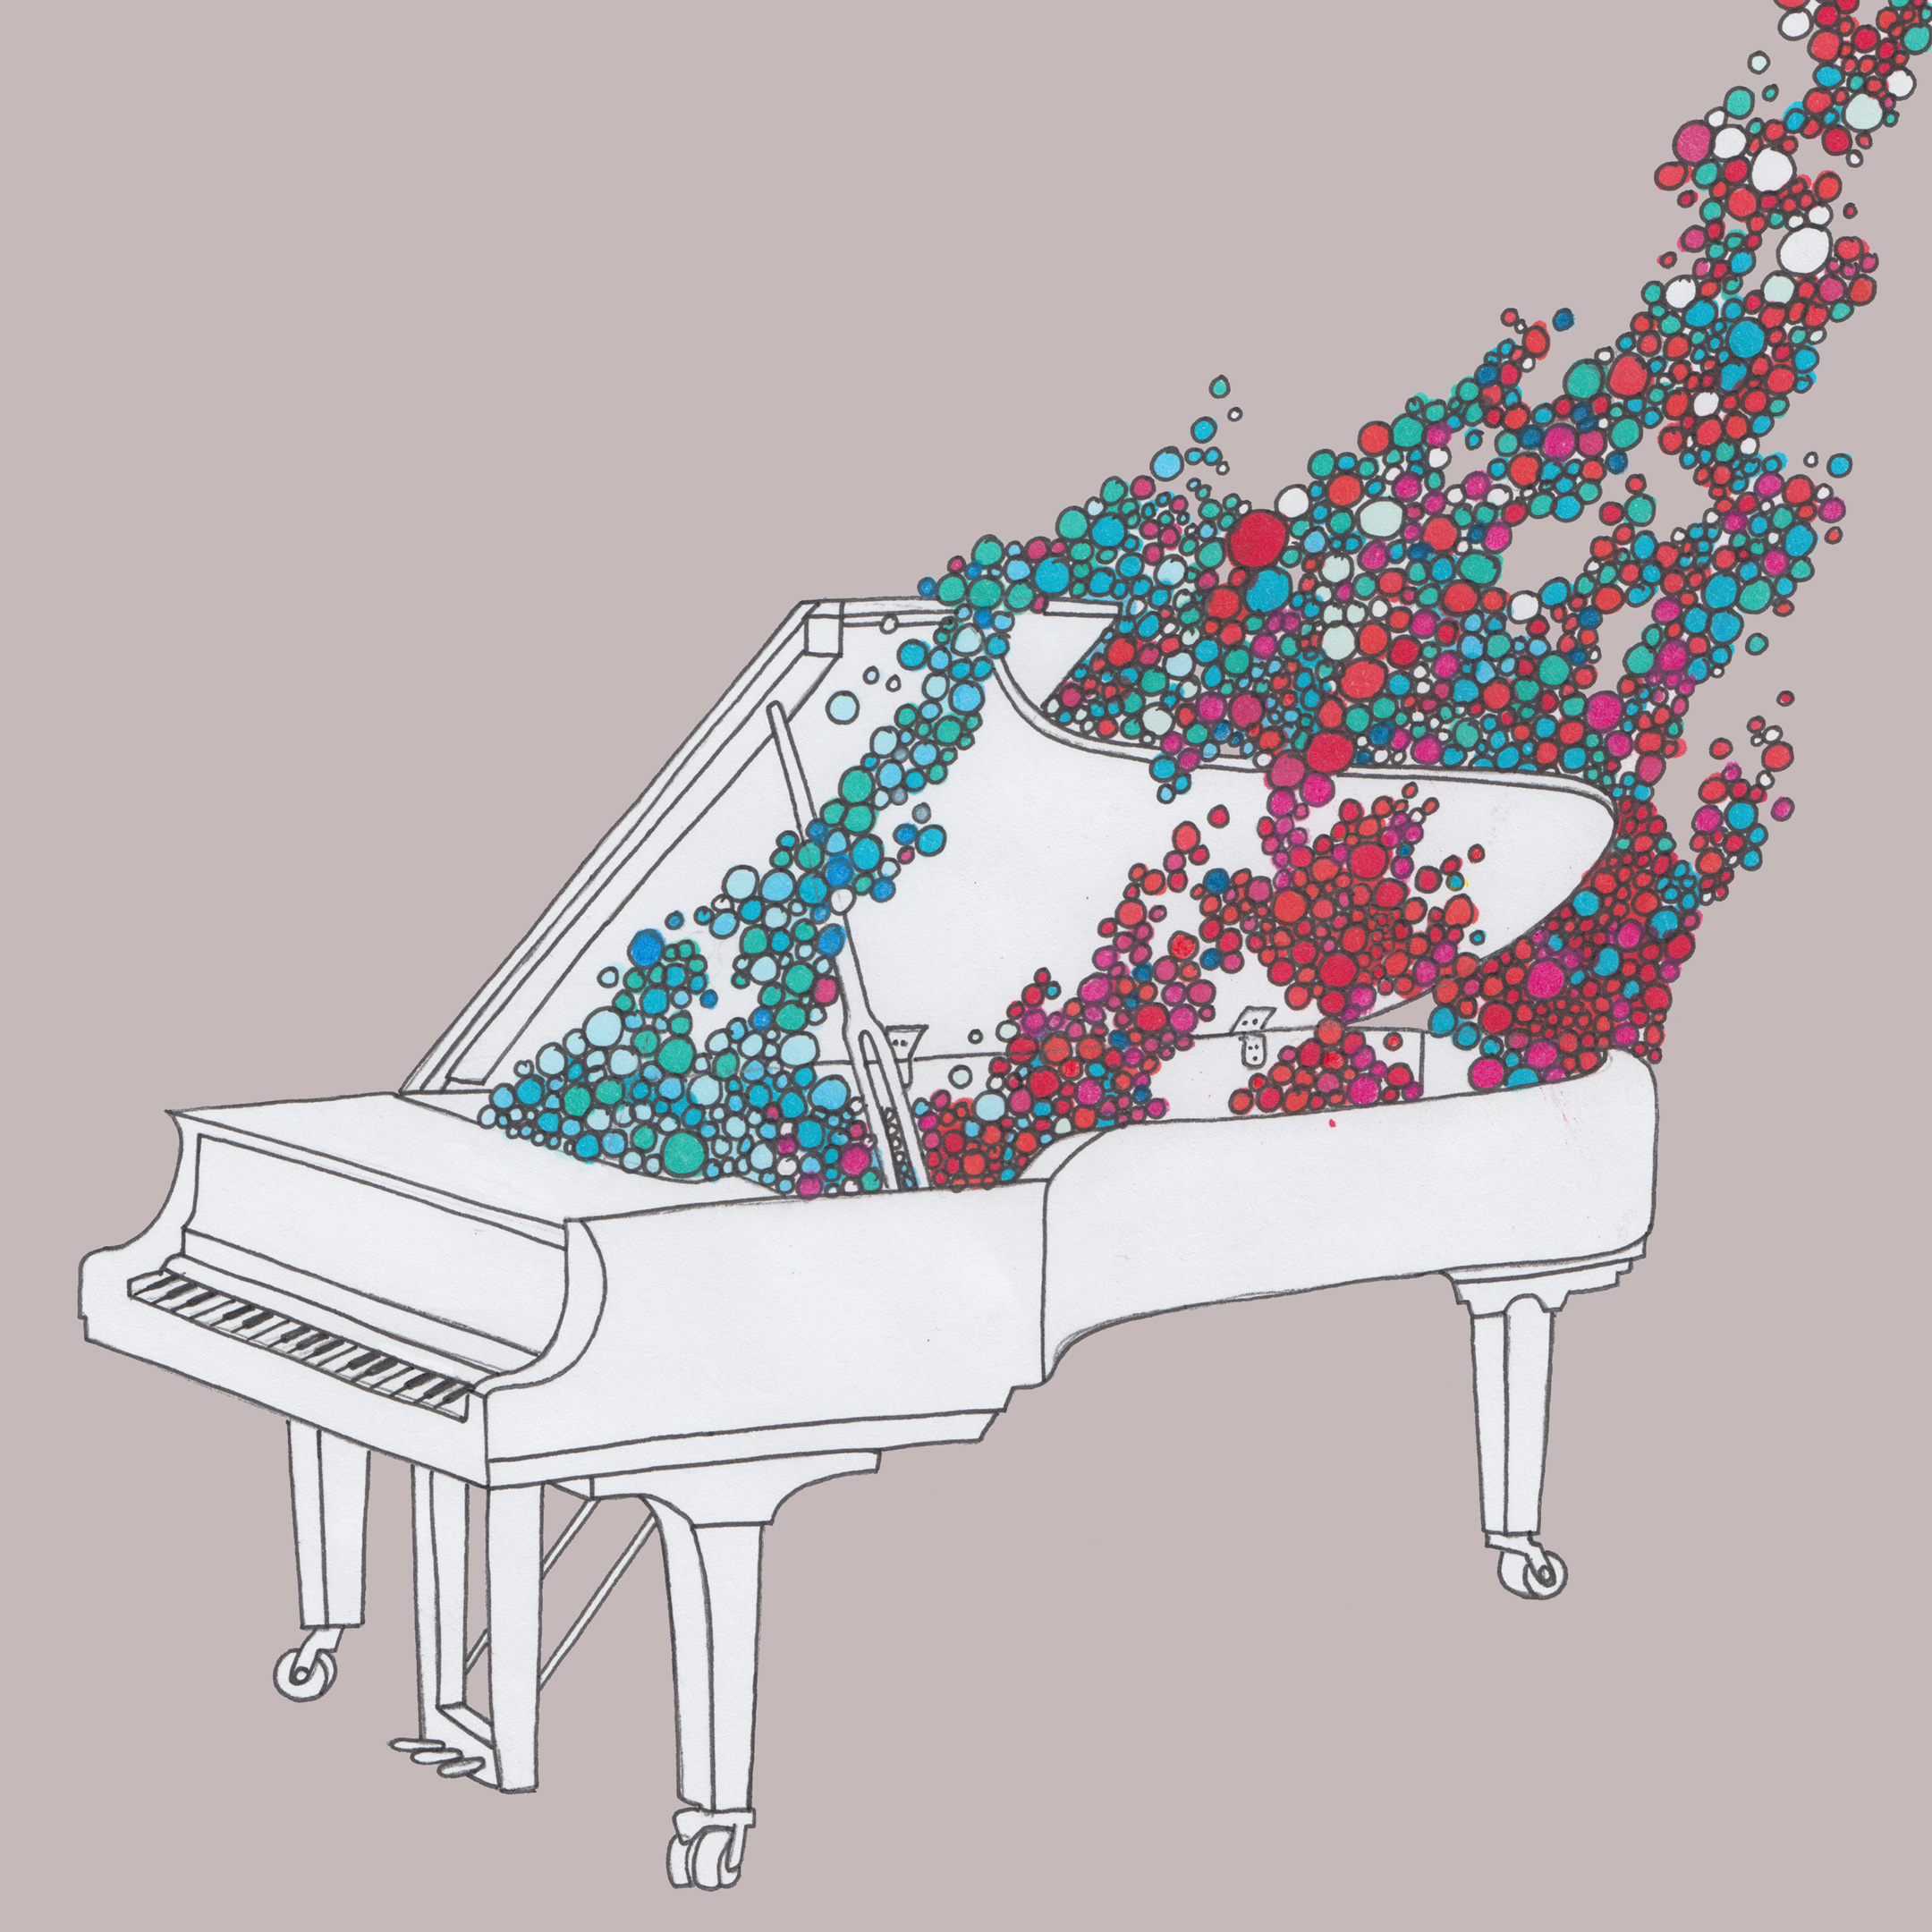 Piano #2 by Sean David Christensen